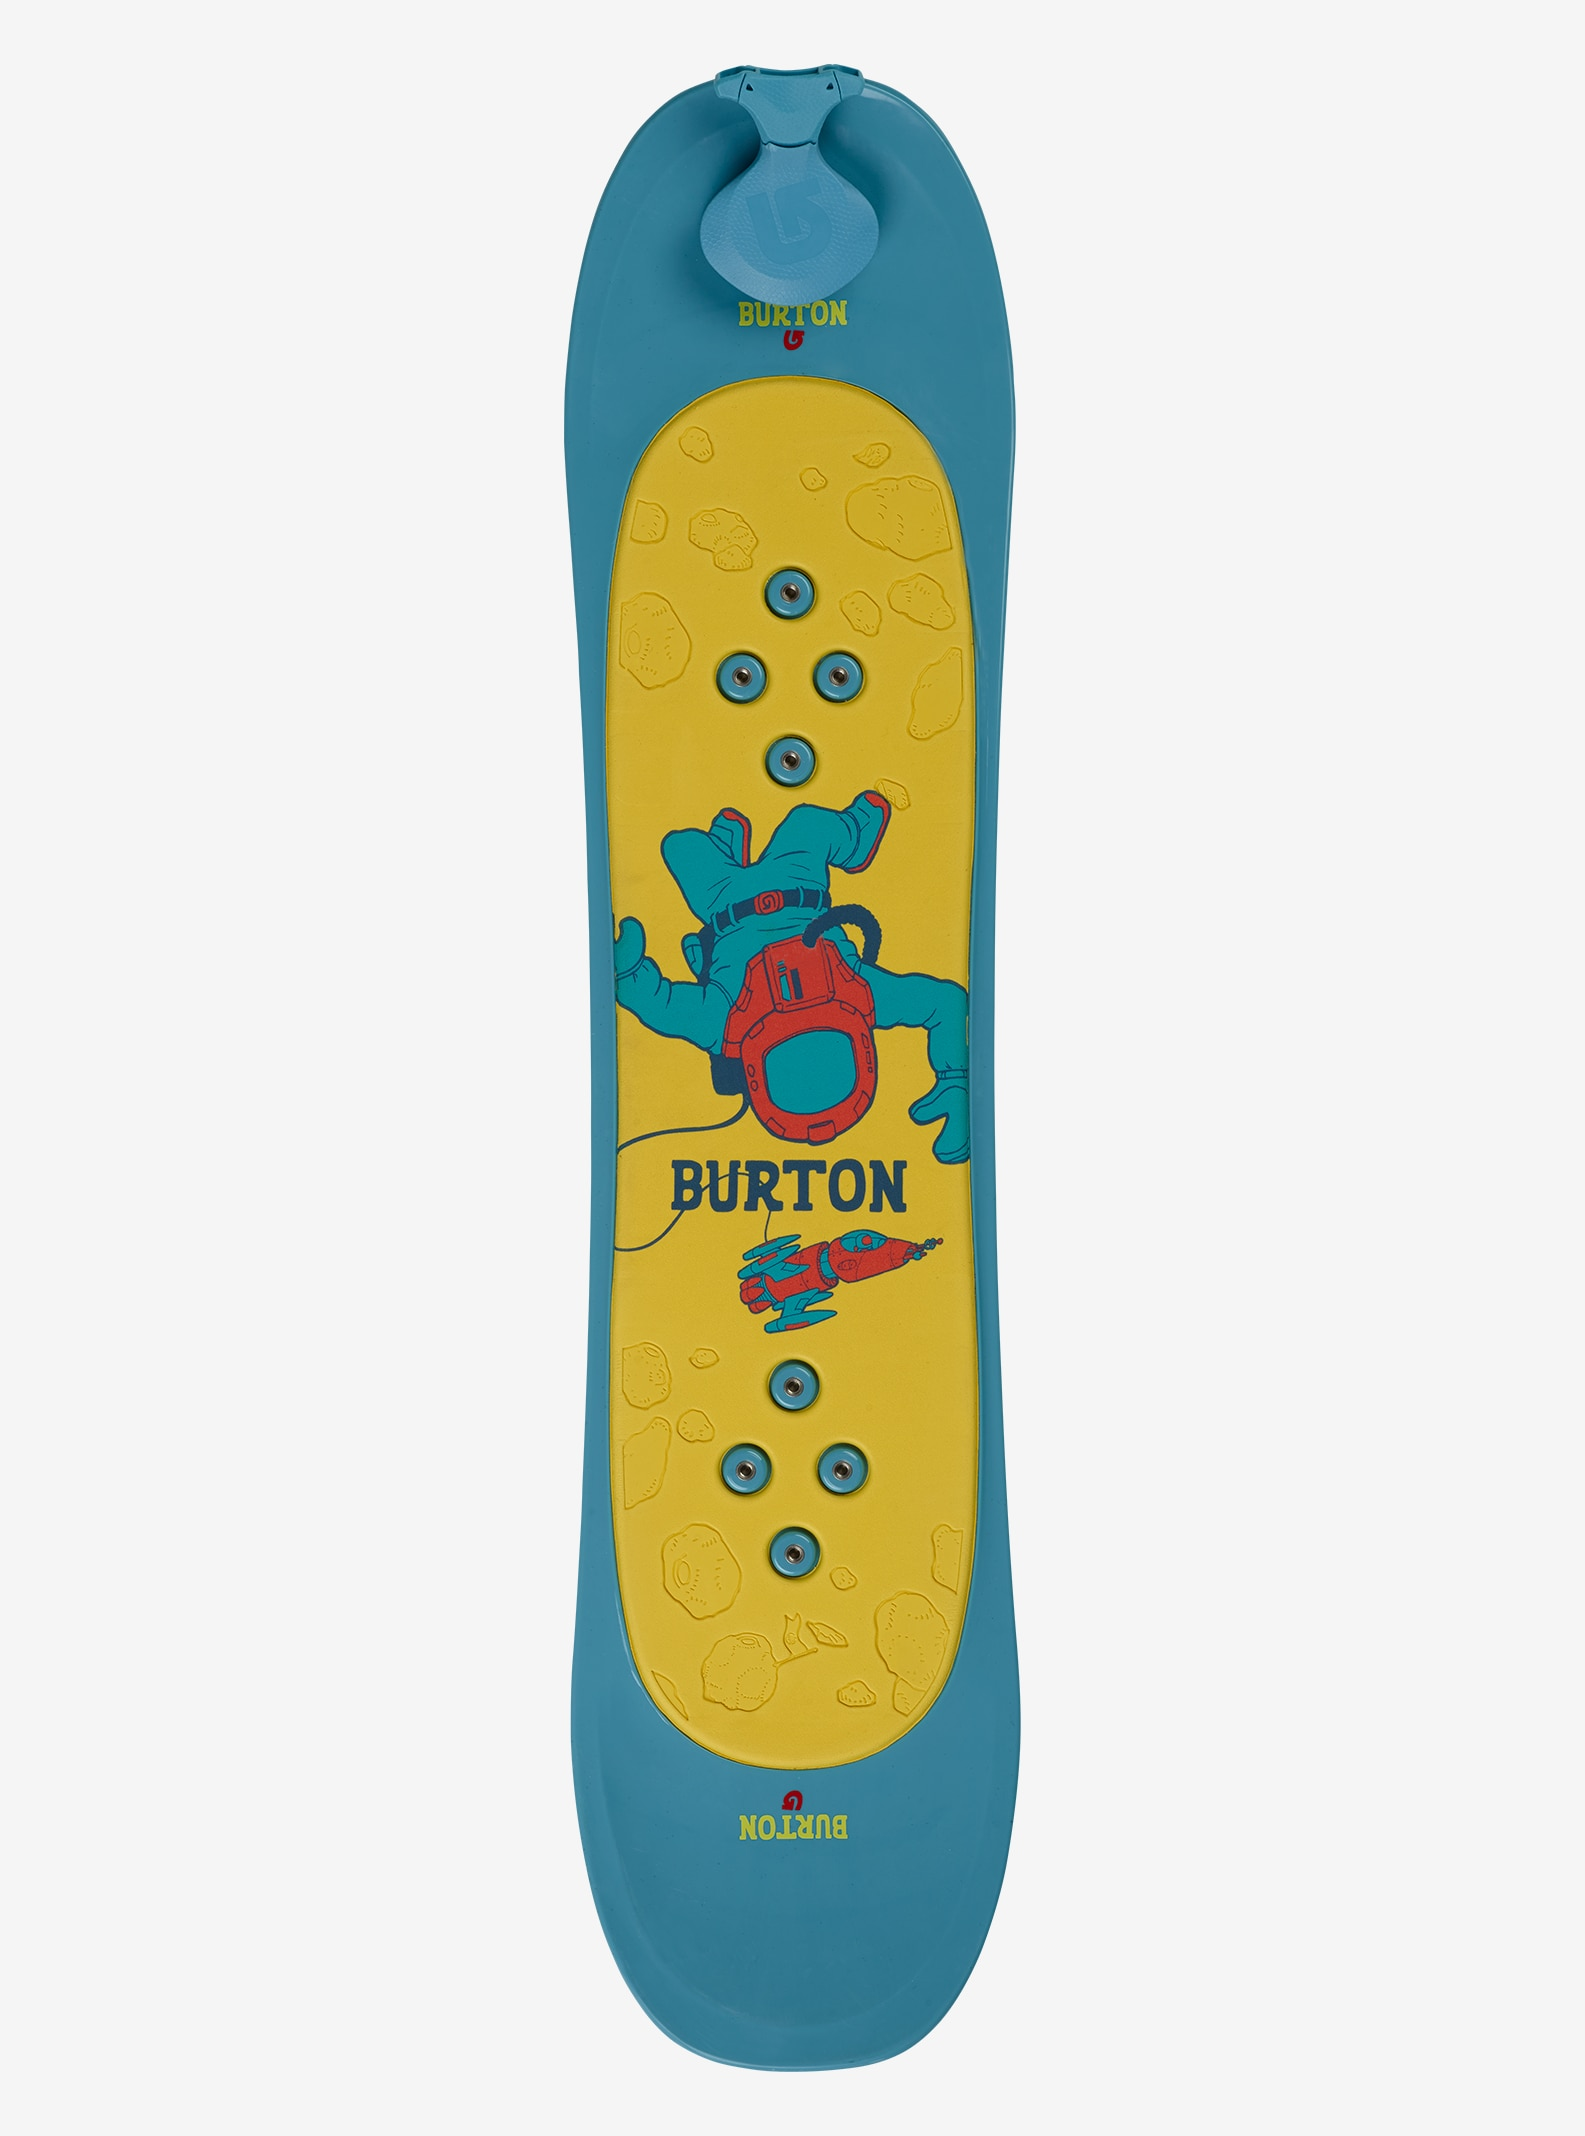 Burton Riglet Snowboard shown in 90